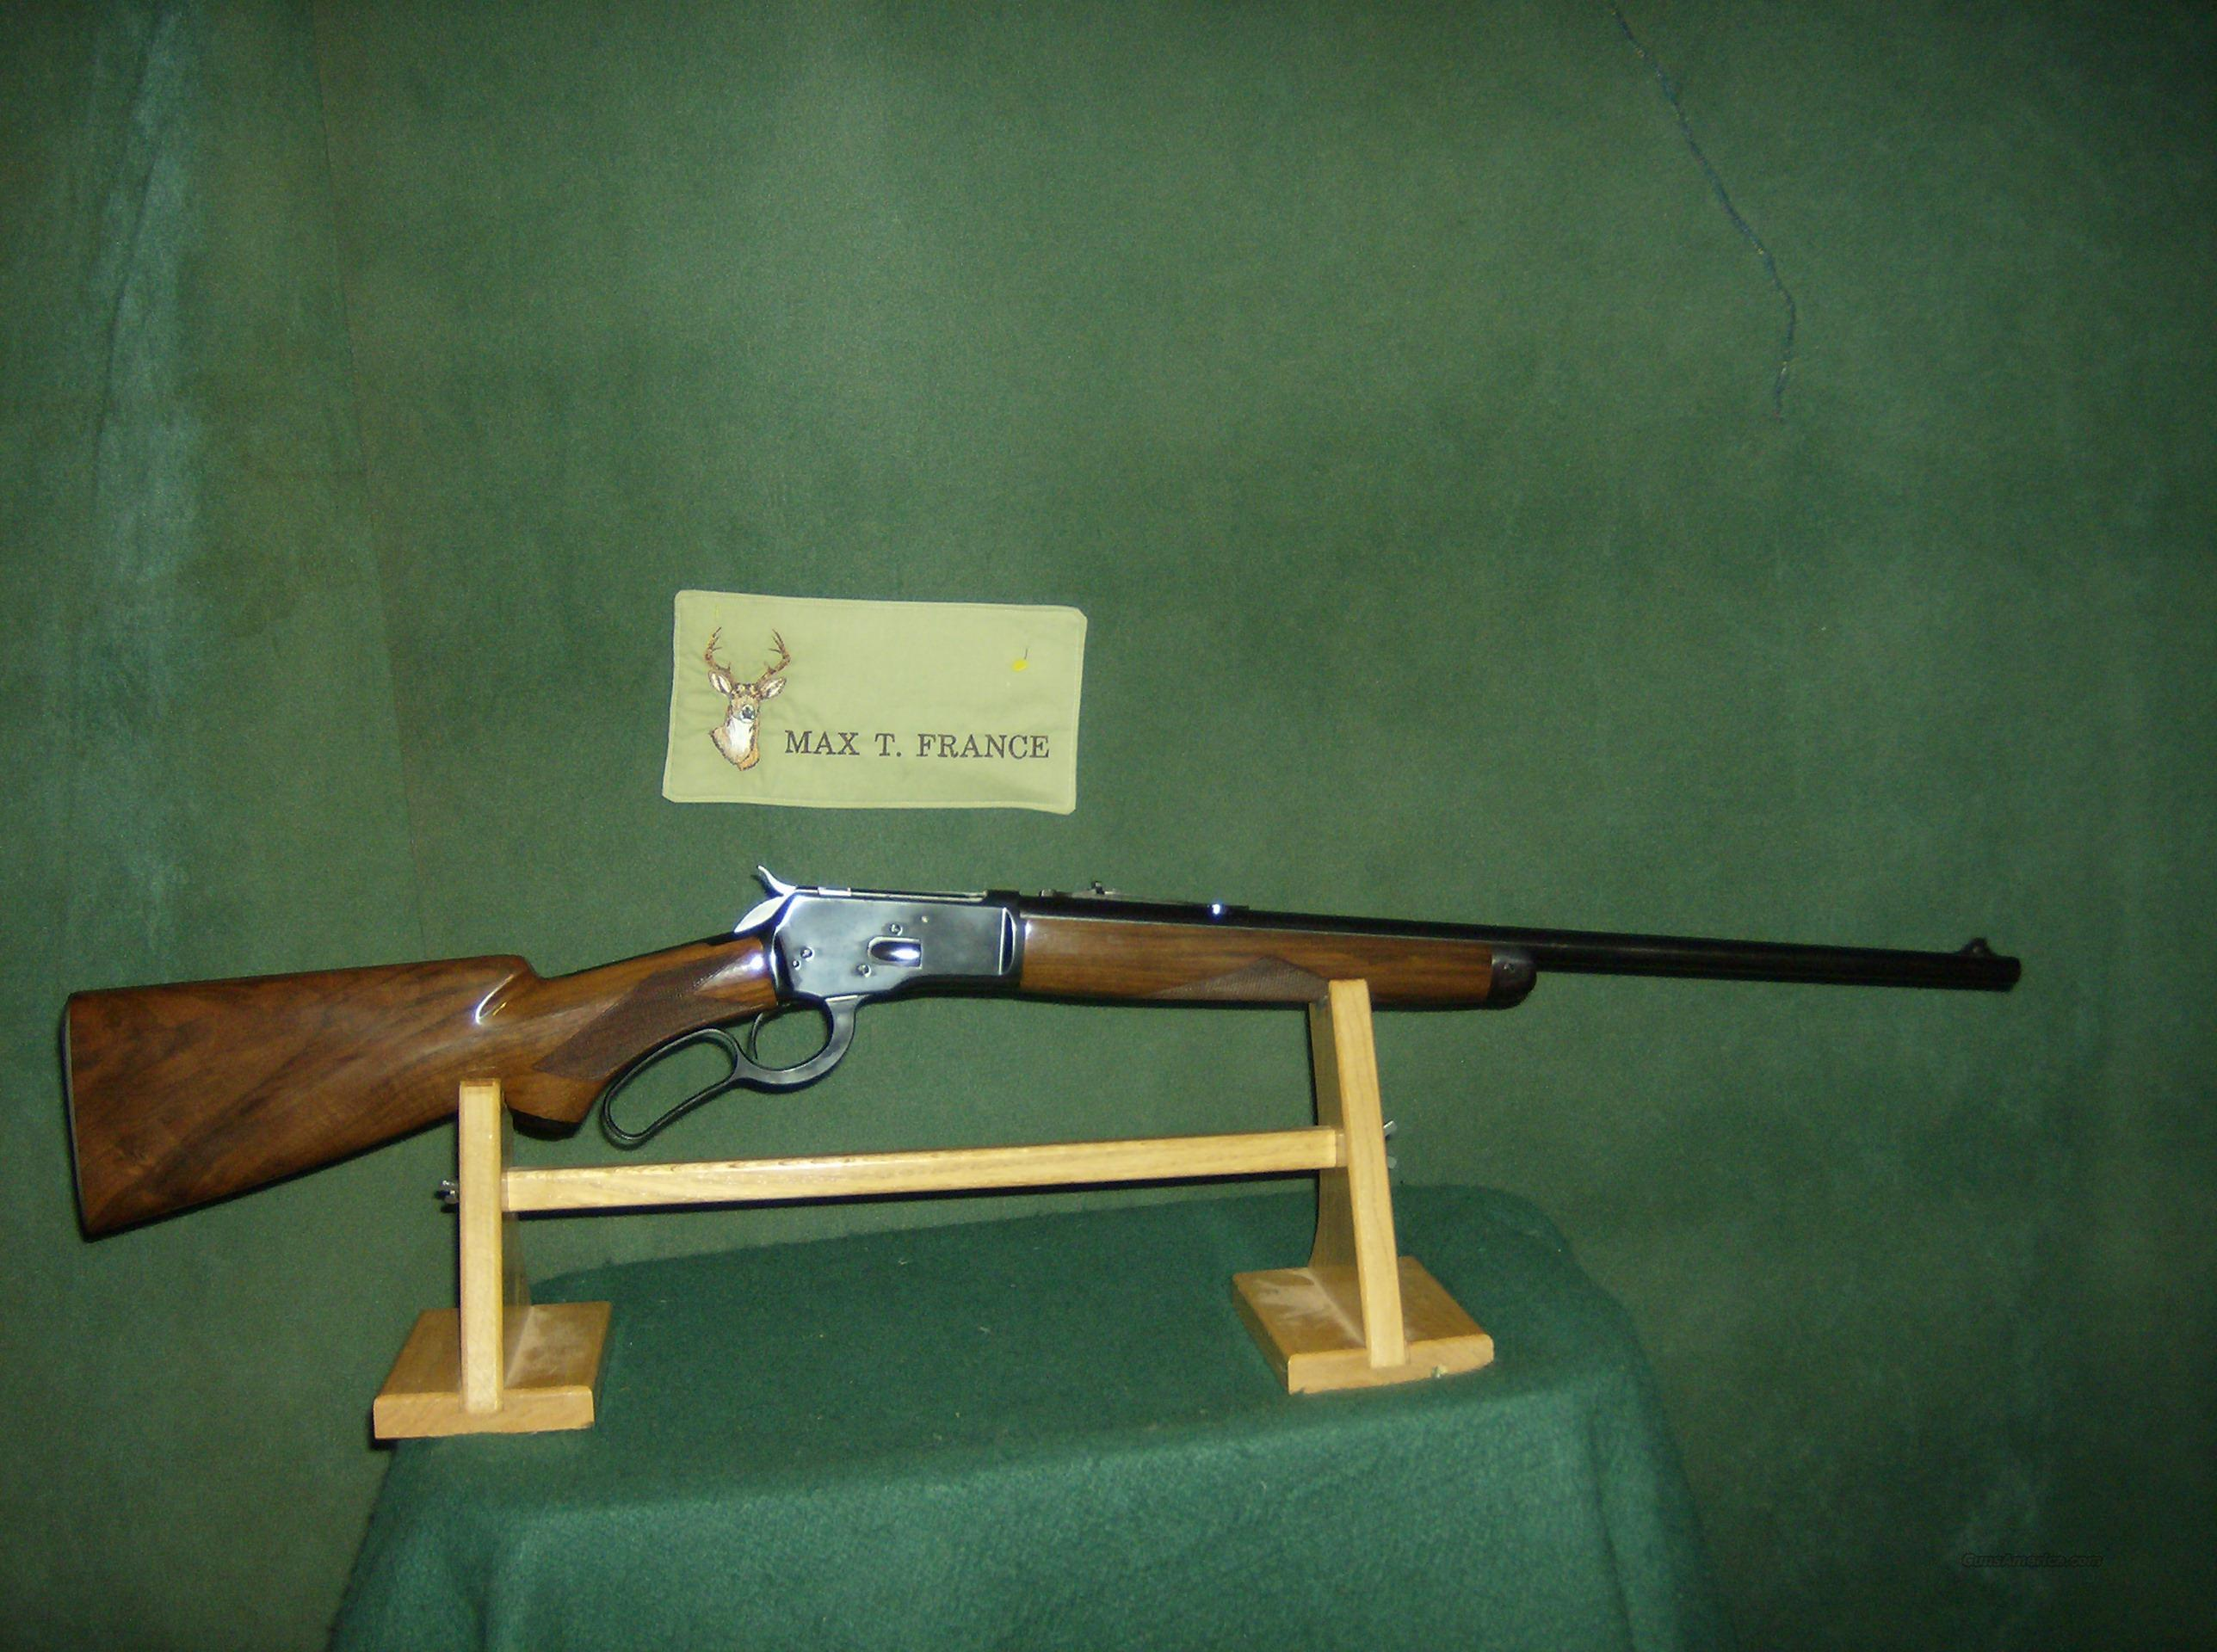 BROWNING MODEL 53 32-20 CALIBER  Guns > Rifles > Browning Rifles > Lever Action